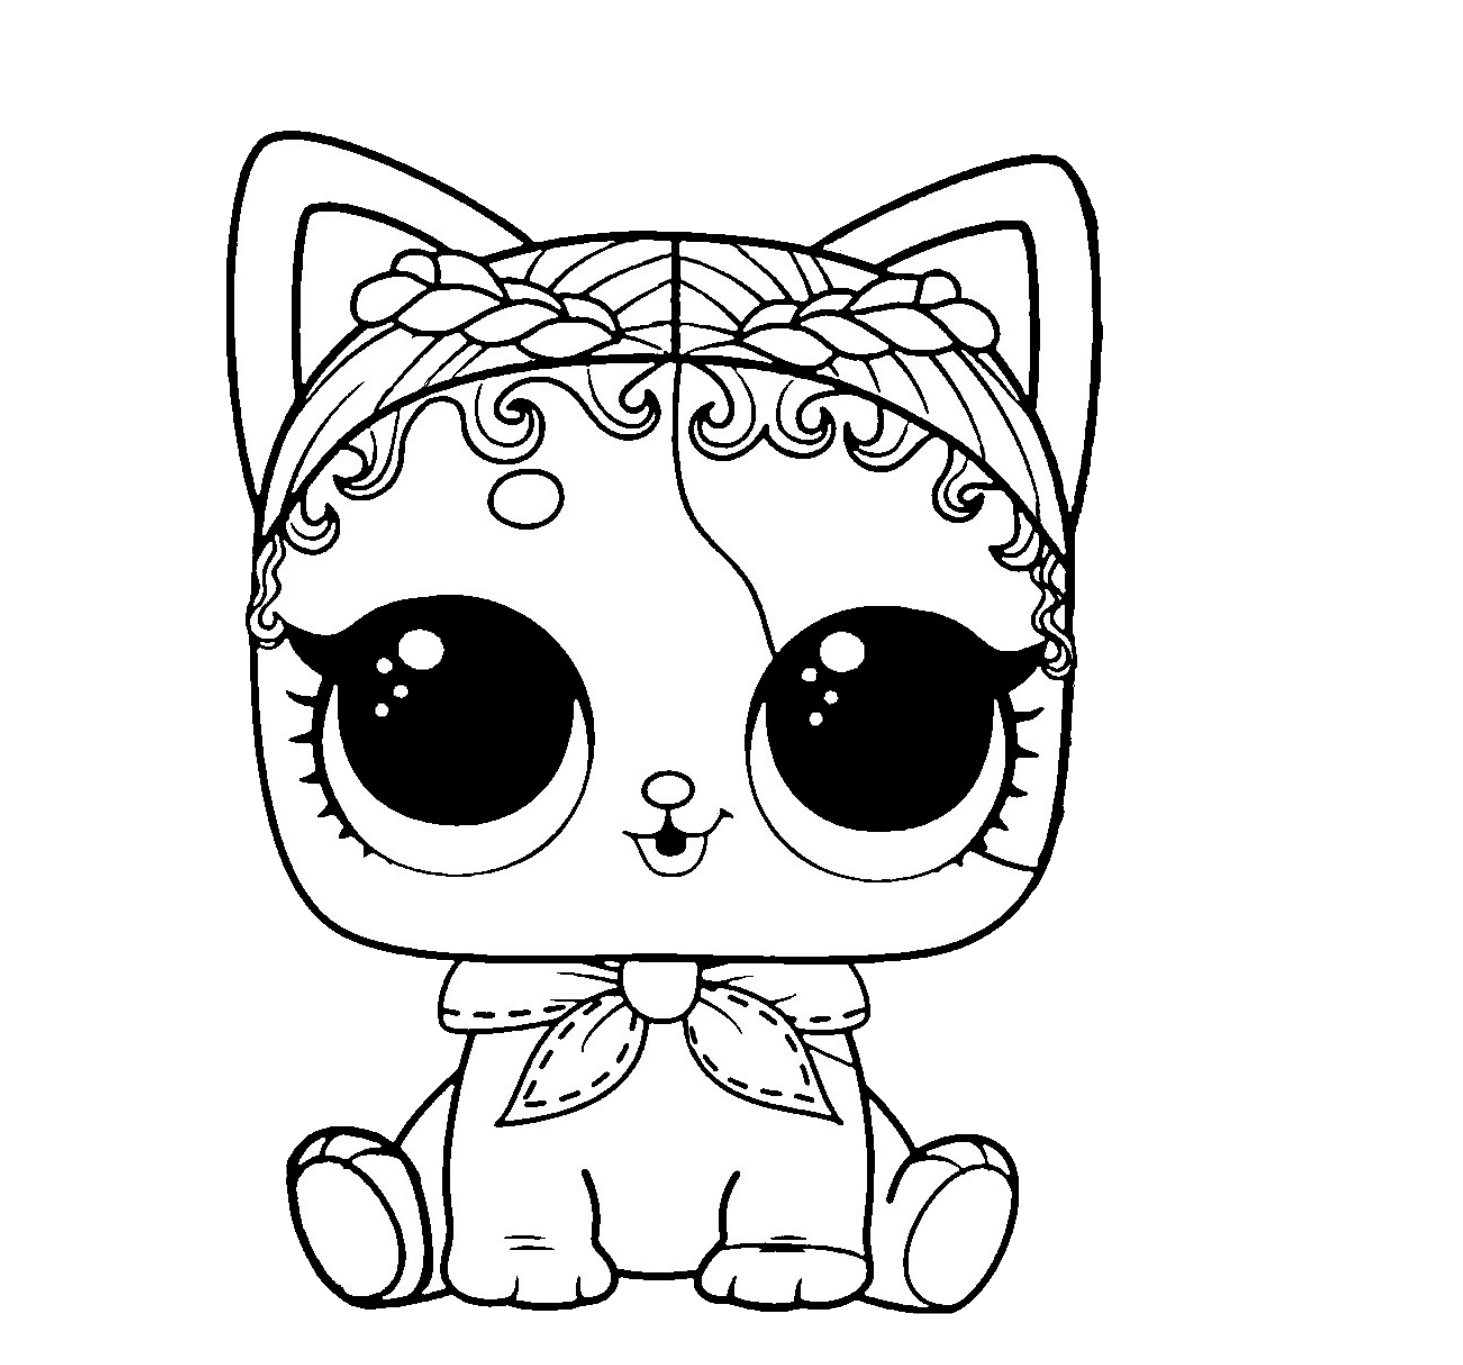 dog lol pets coloring pages lol pets coloring pages cute midnight pup with devil wings pets lol coloring dog pages